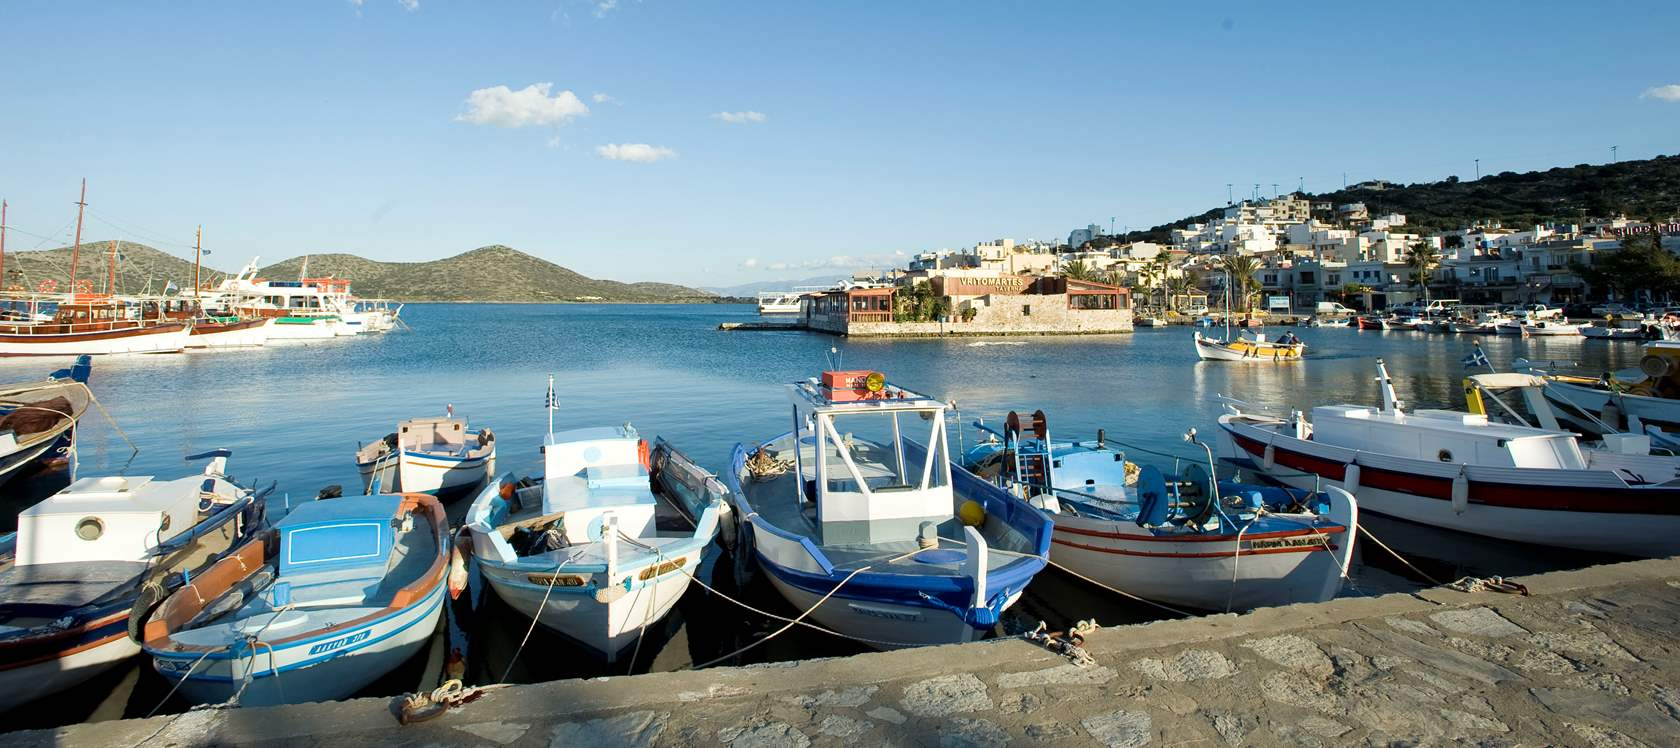 Elounda harbor